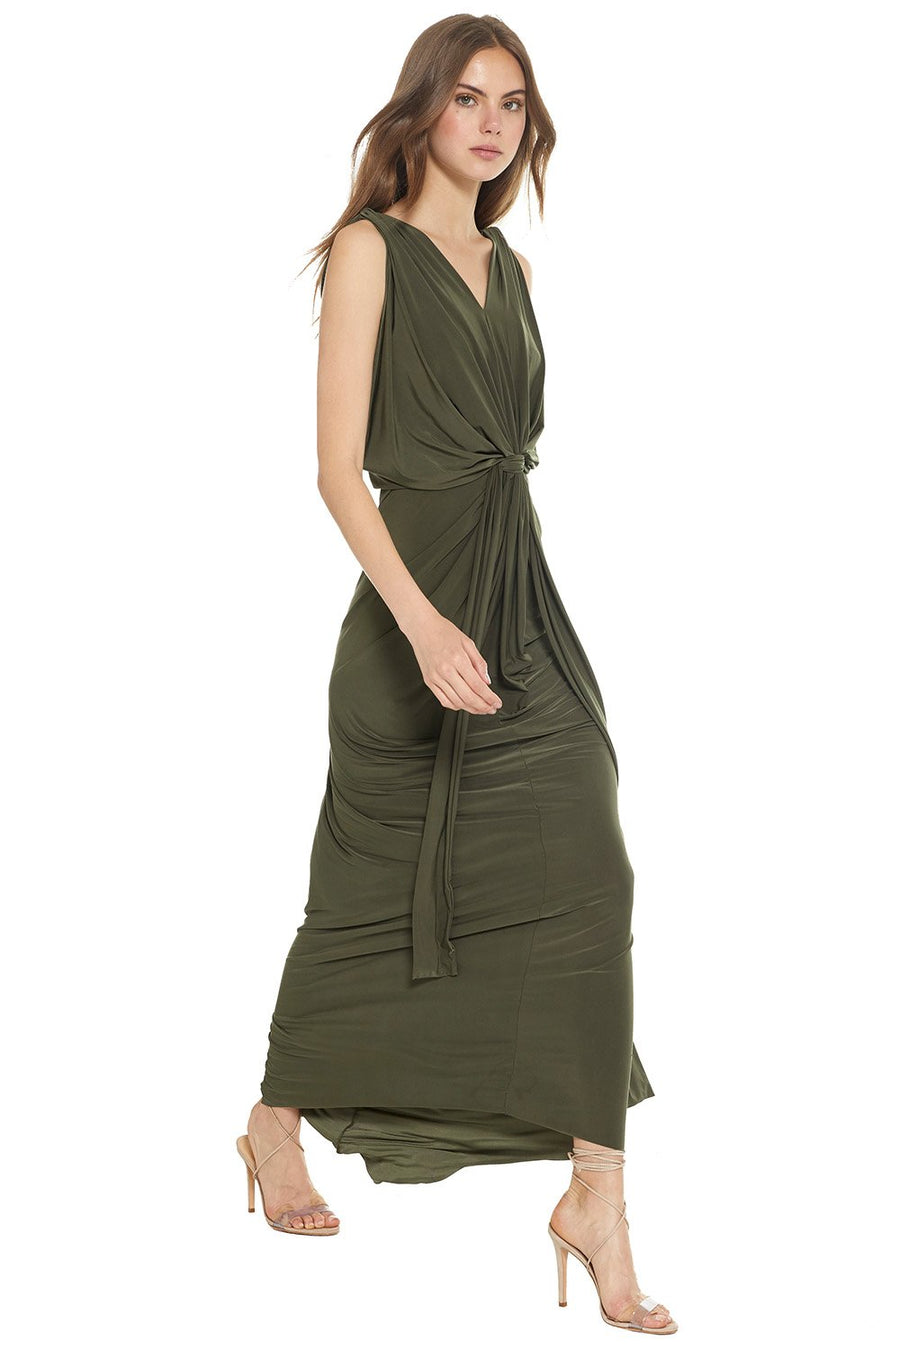 Xenia Dress - Olive - Pavilion